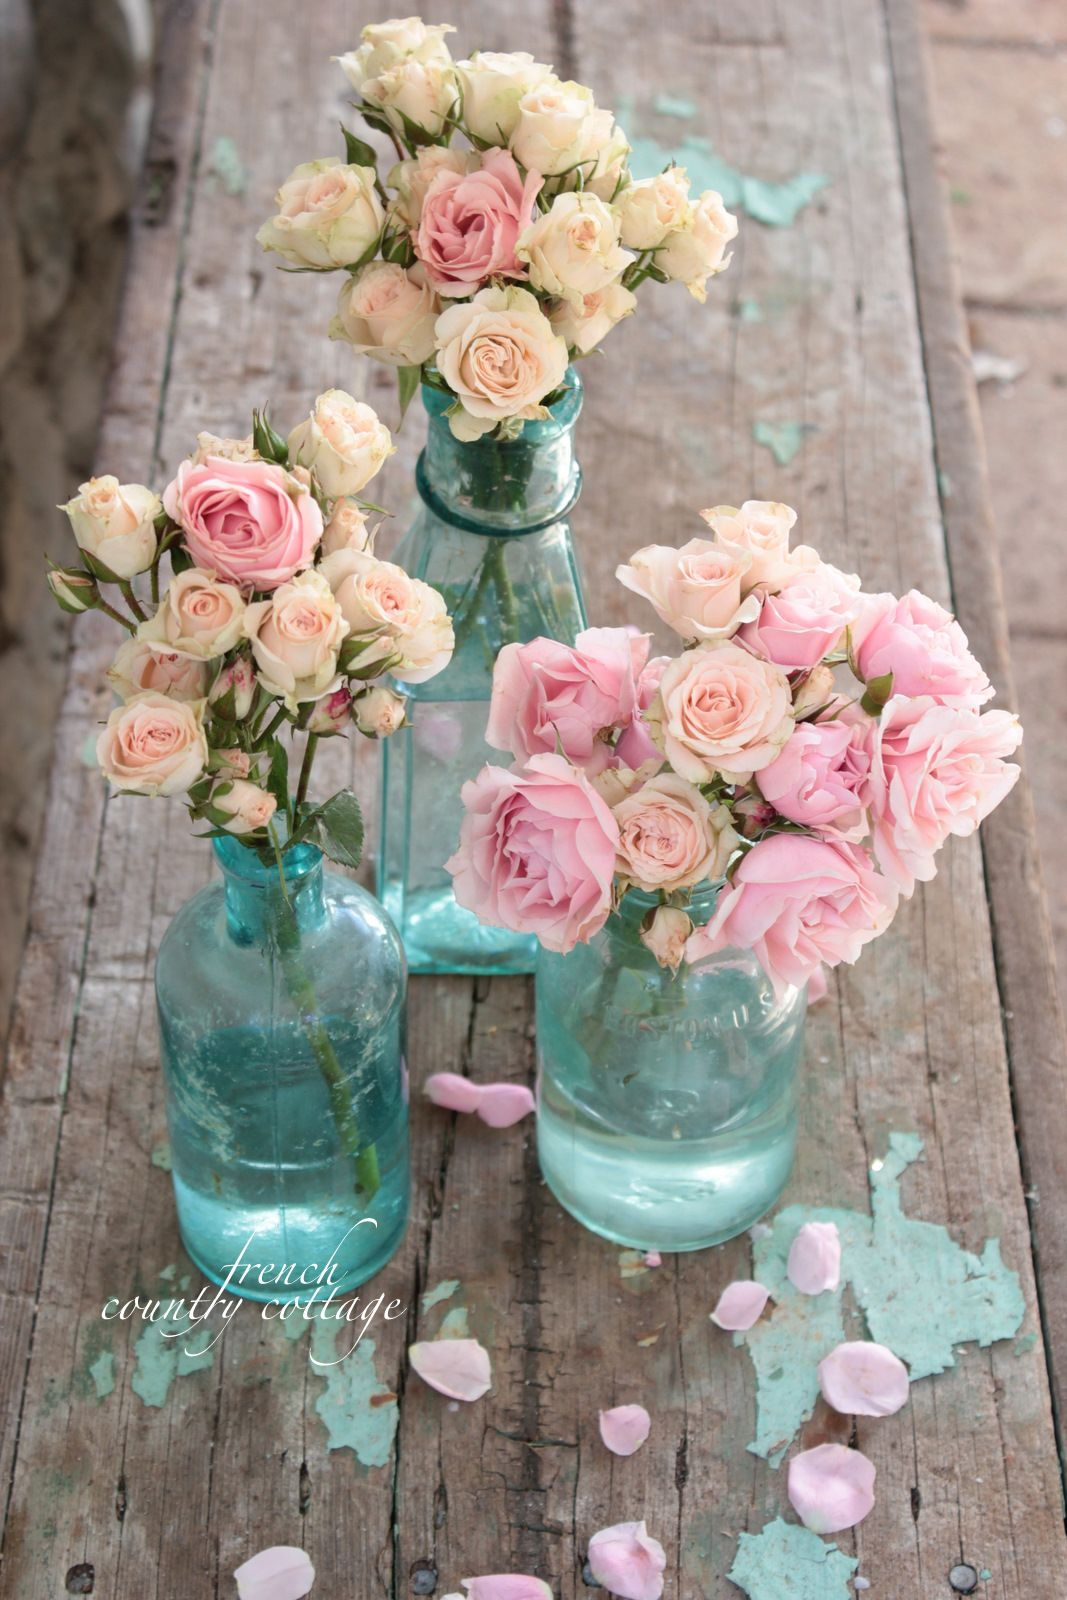 Petals and roses, love the pink roses in the aqua green jars...  <3